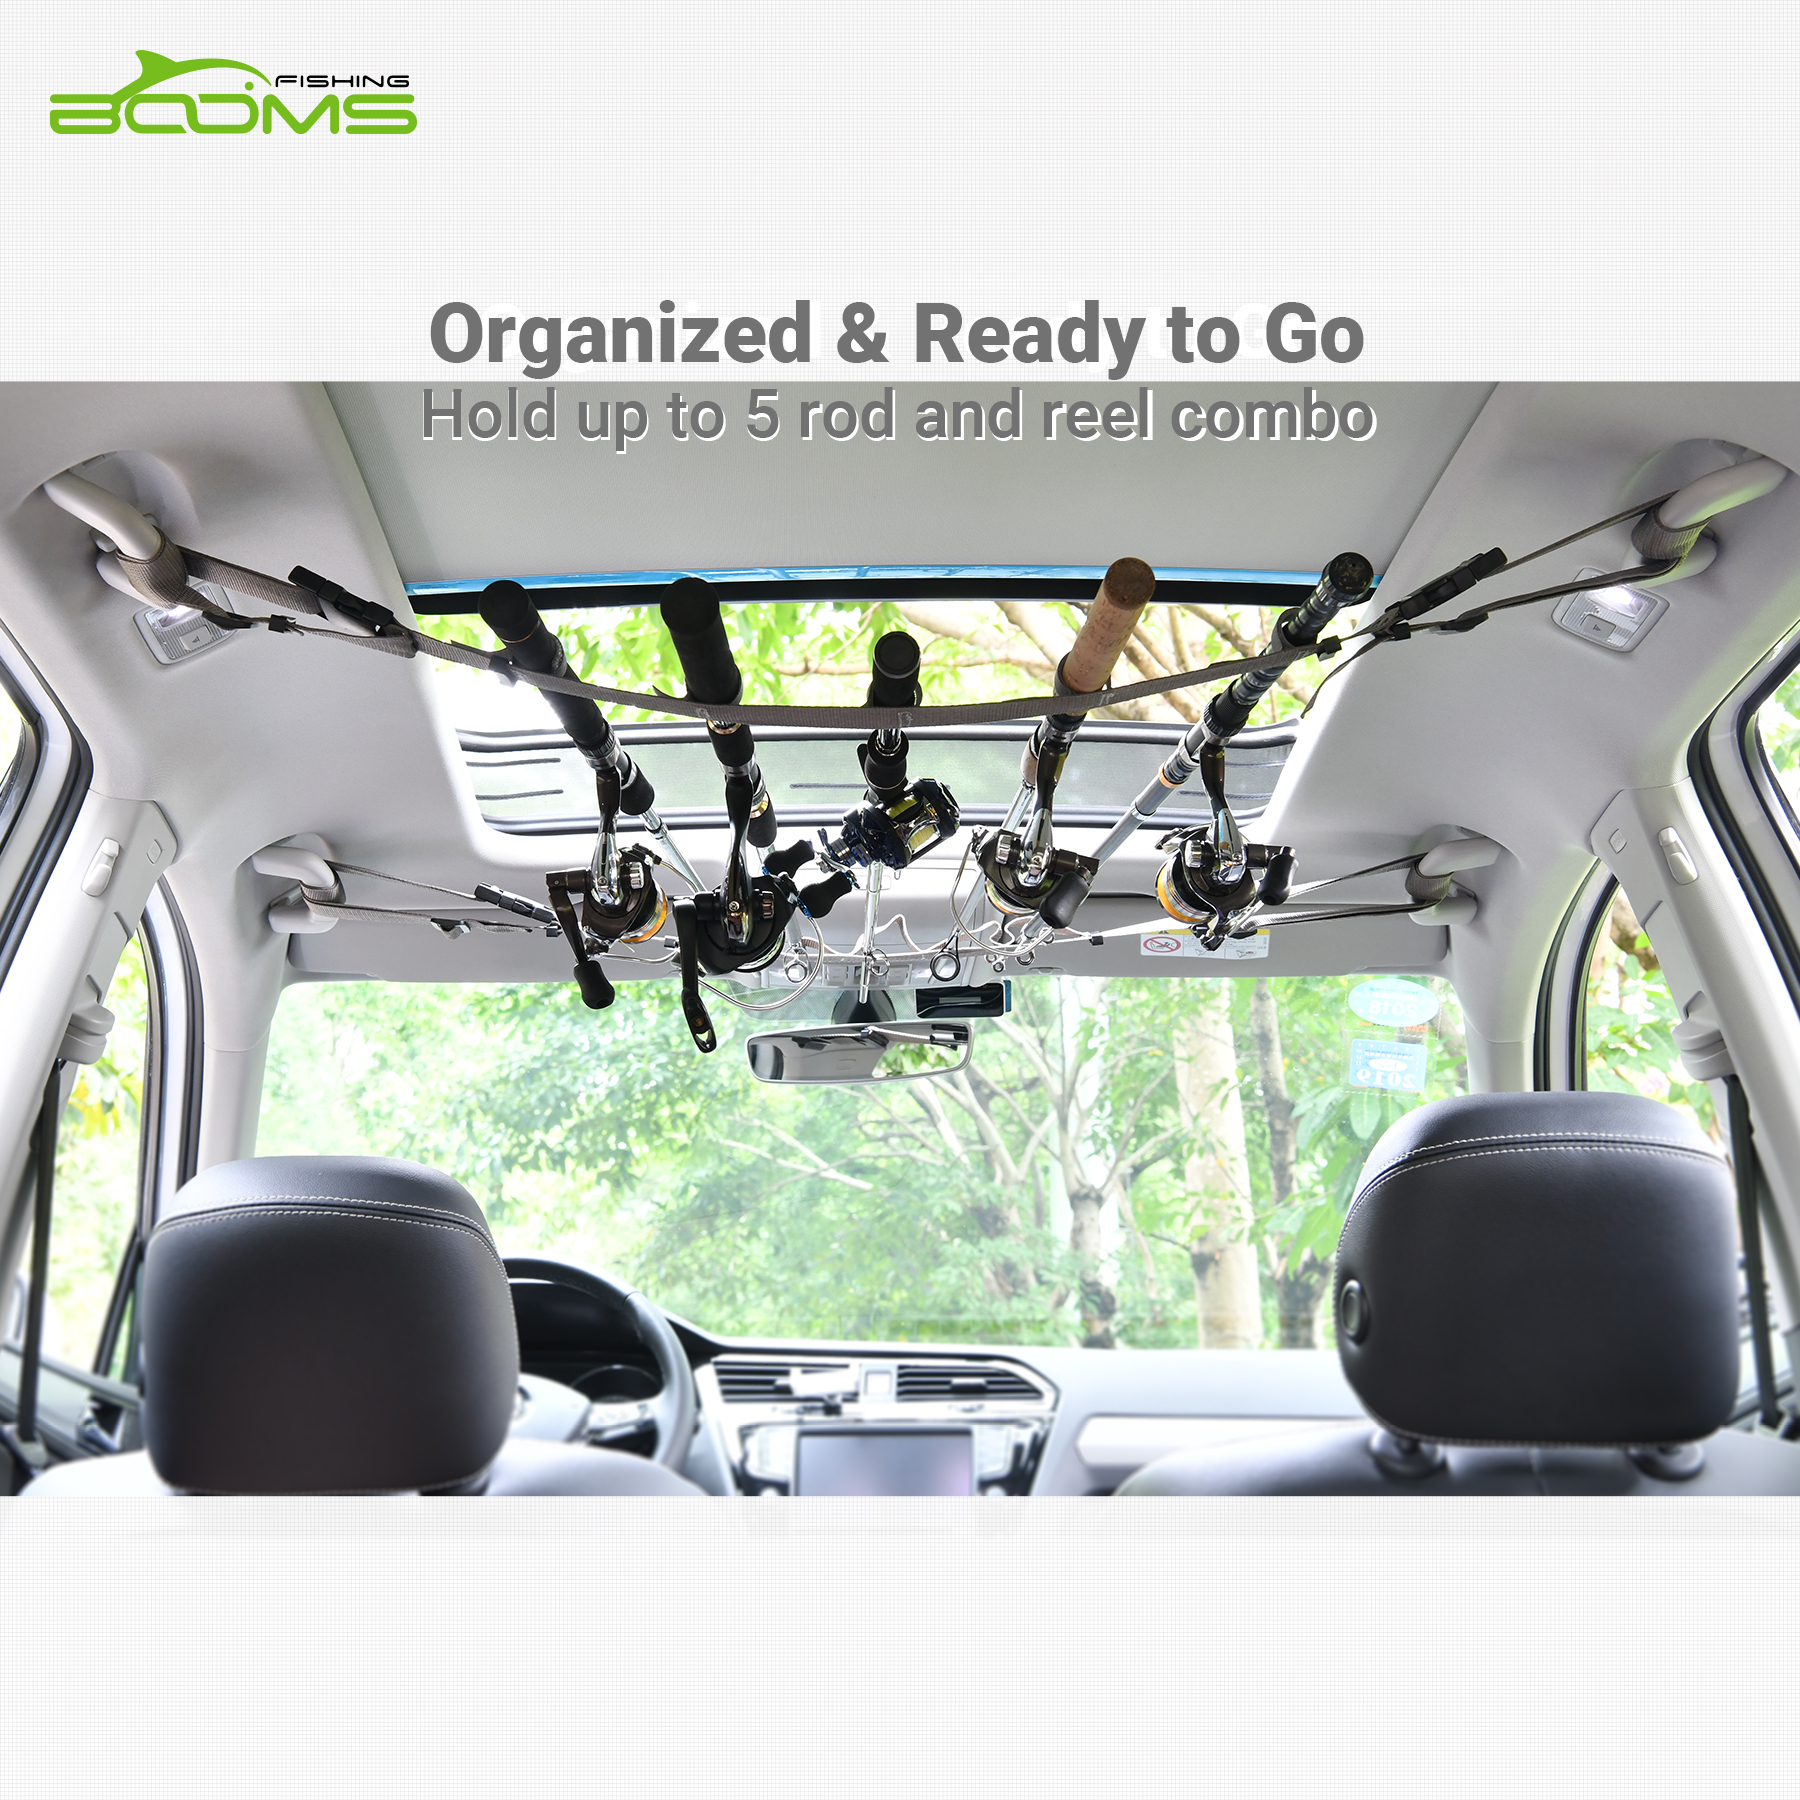 Booms Fishing VRC Vehicle Rod Carrier Strap